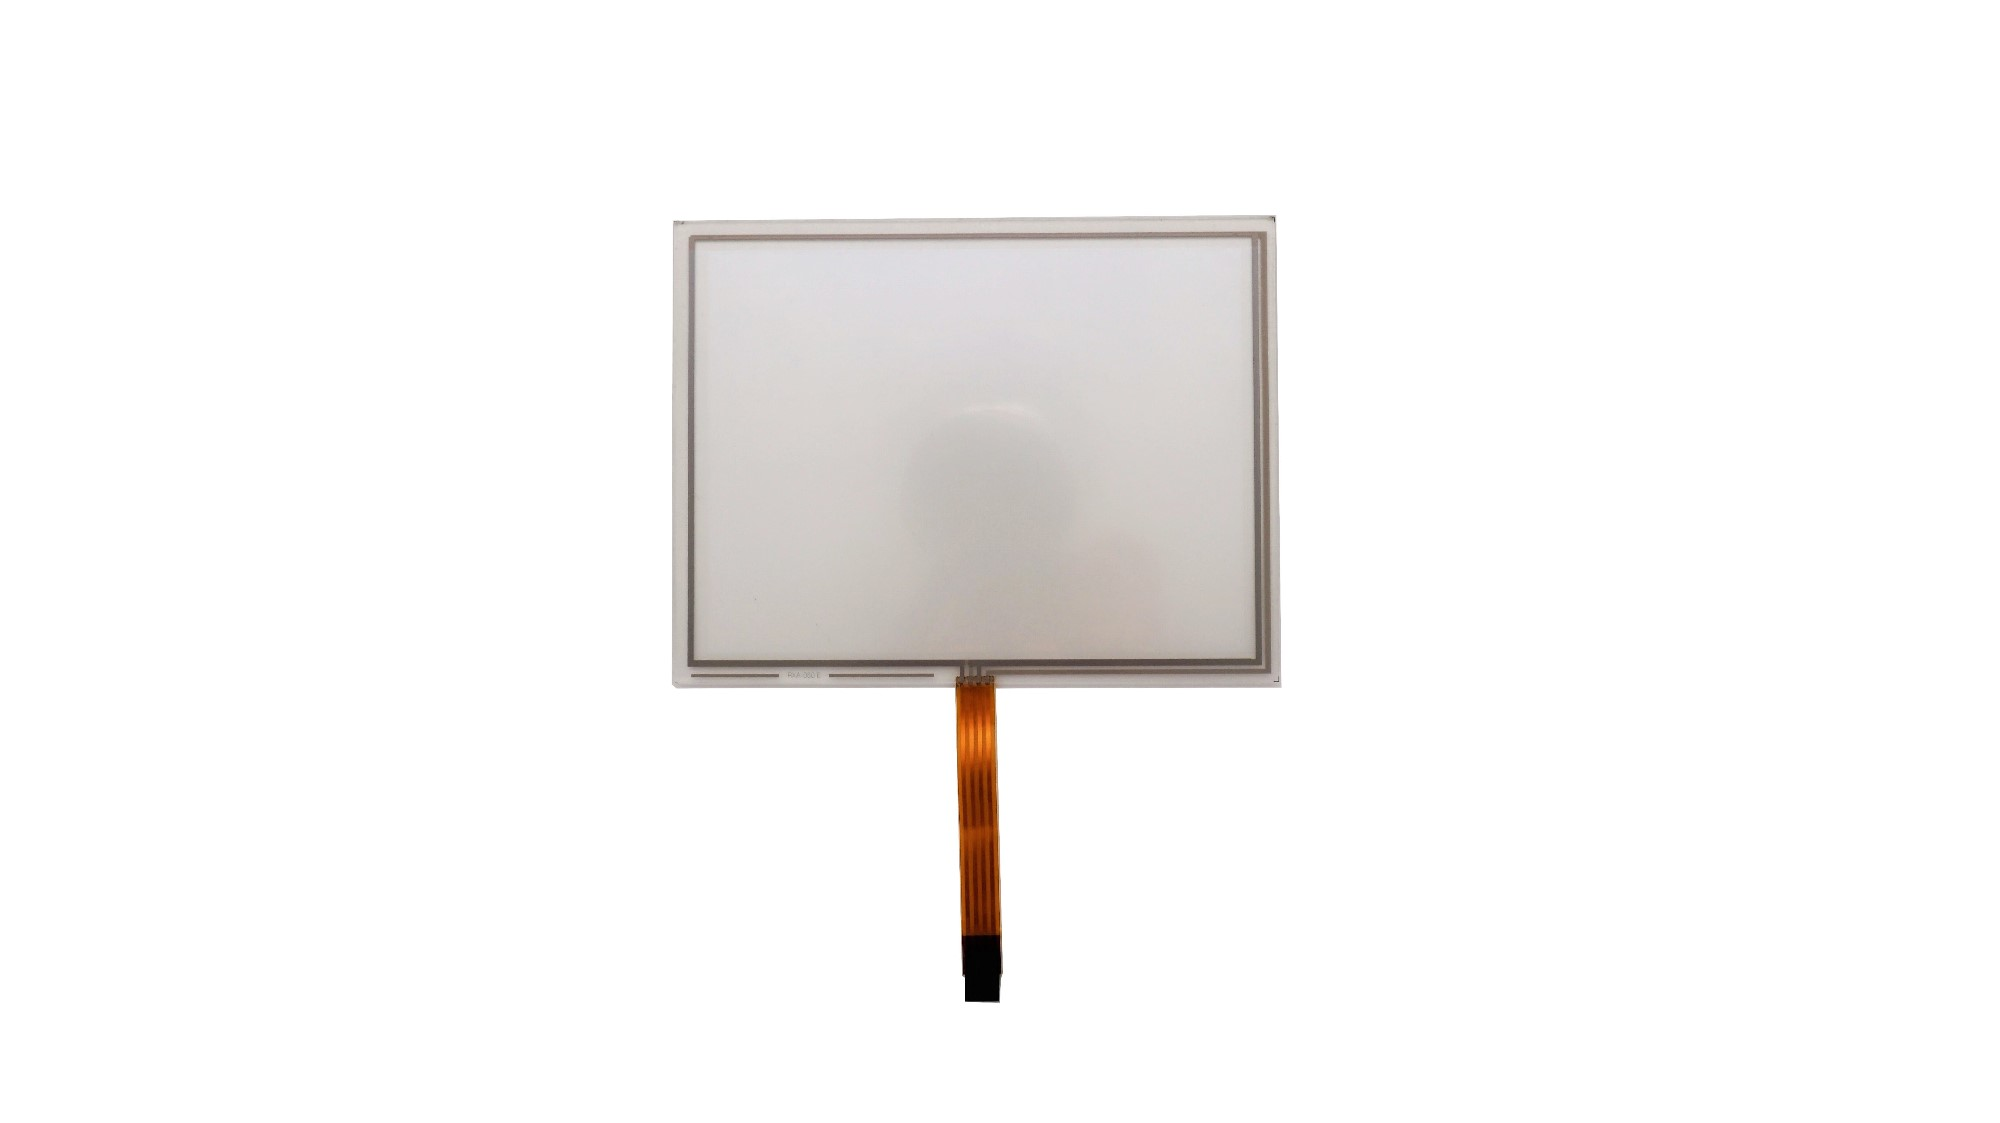 8.0 Inch 4 Wire Resistive Touch Panel